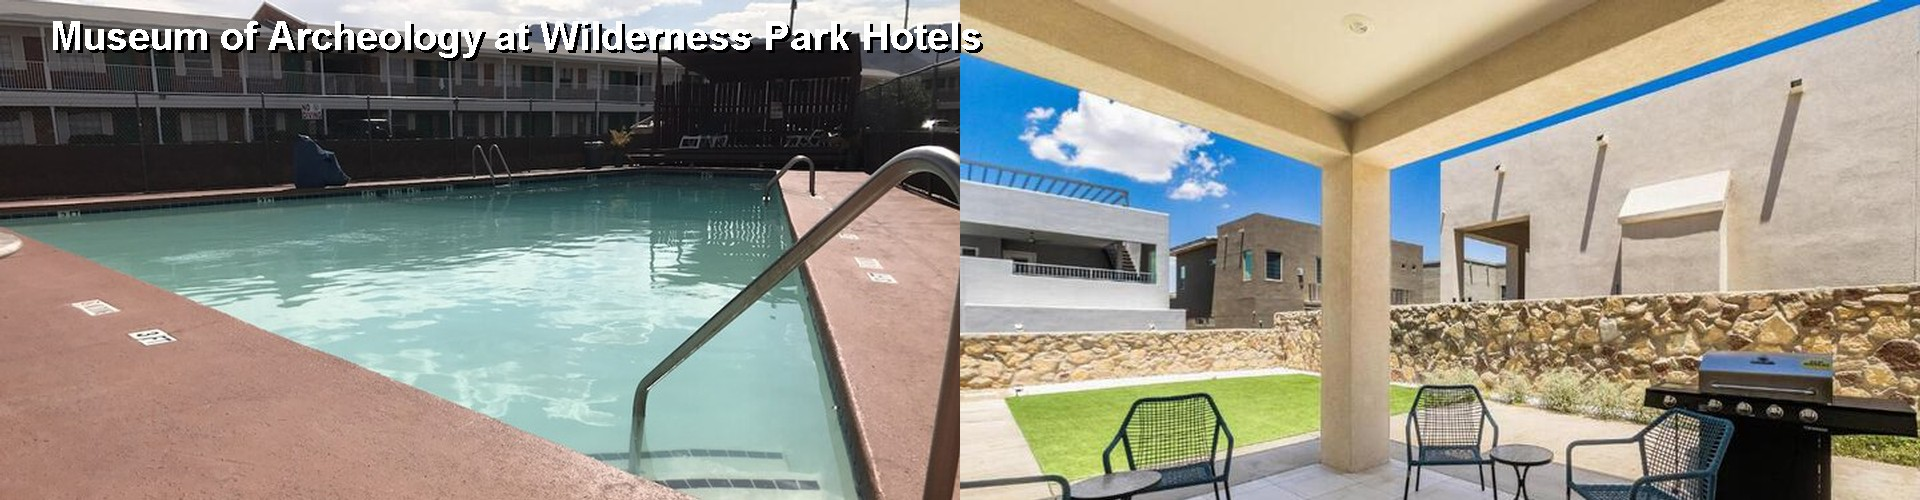 5 Best Hotels near Museum of Archeology at Wilderness Park